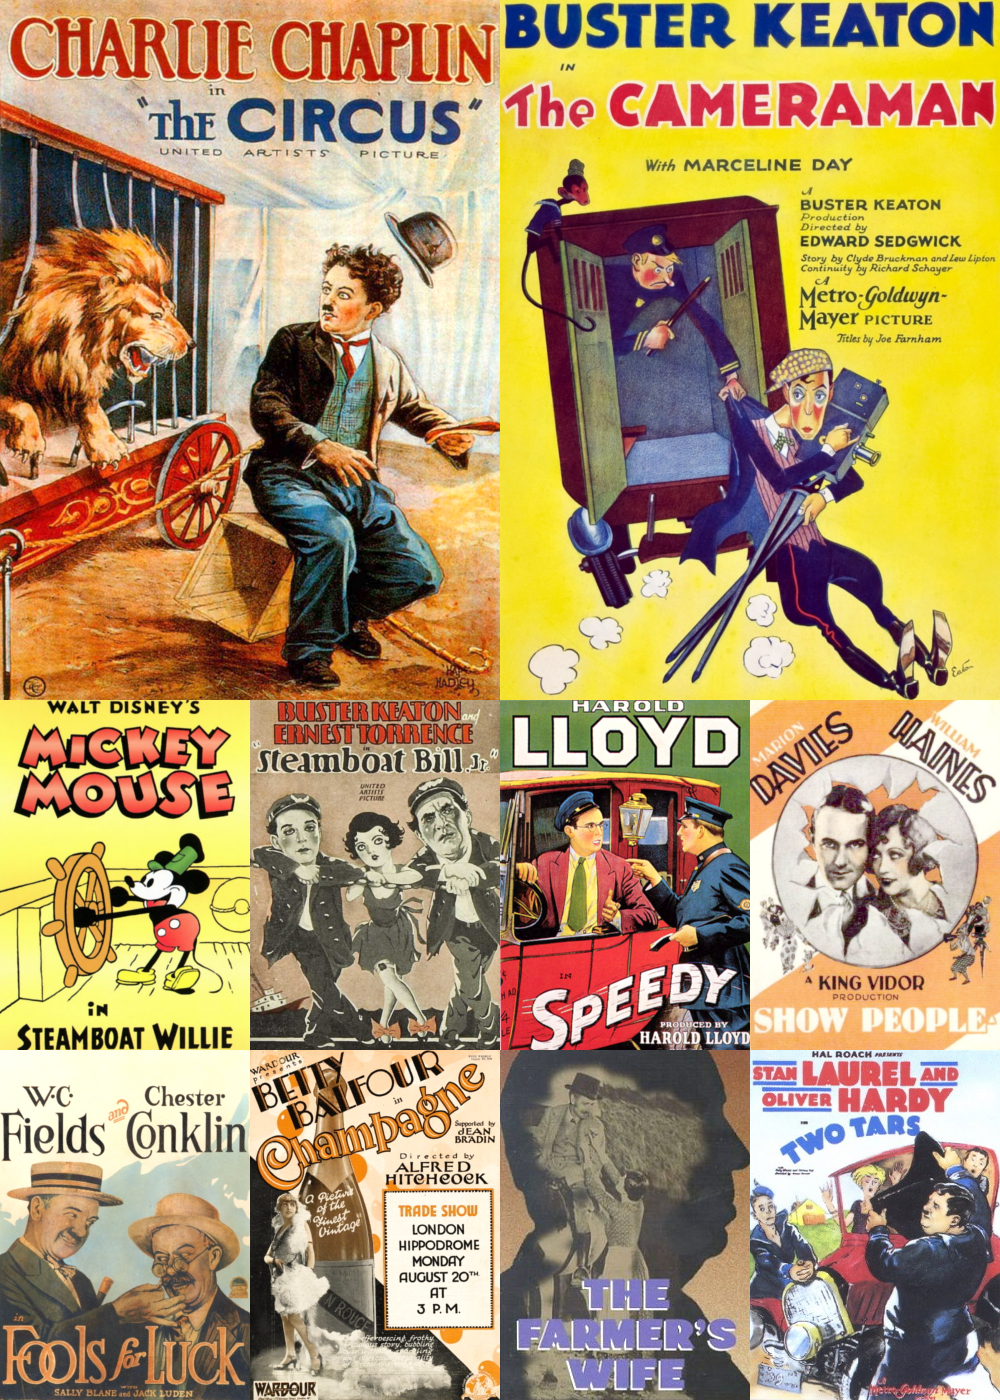 Top 10 Comedy Movies 1928